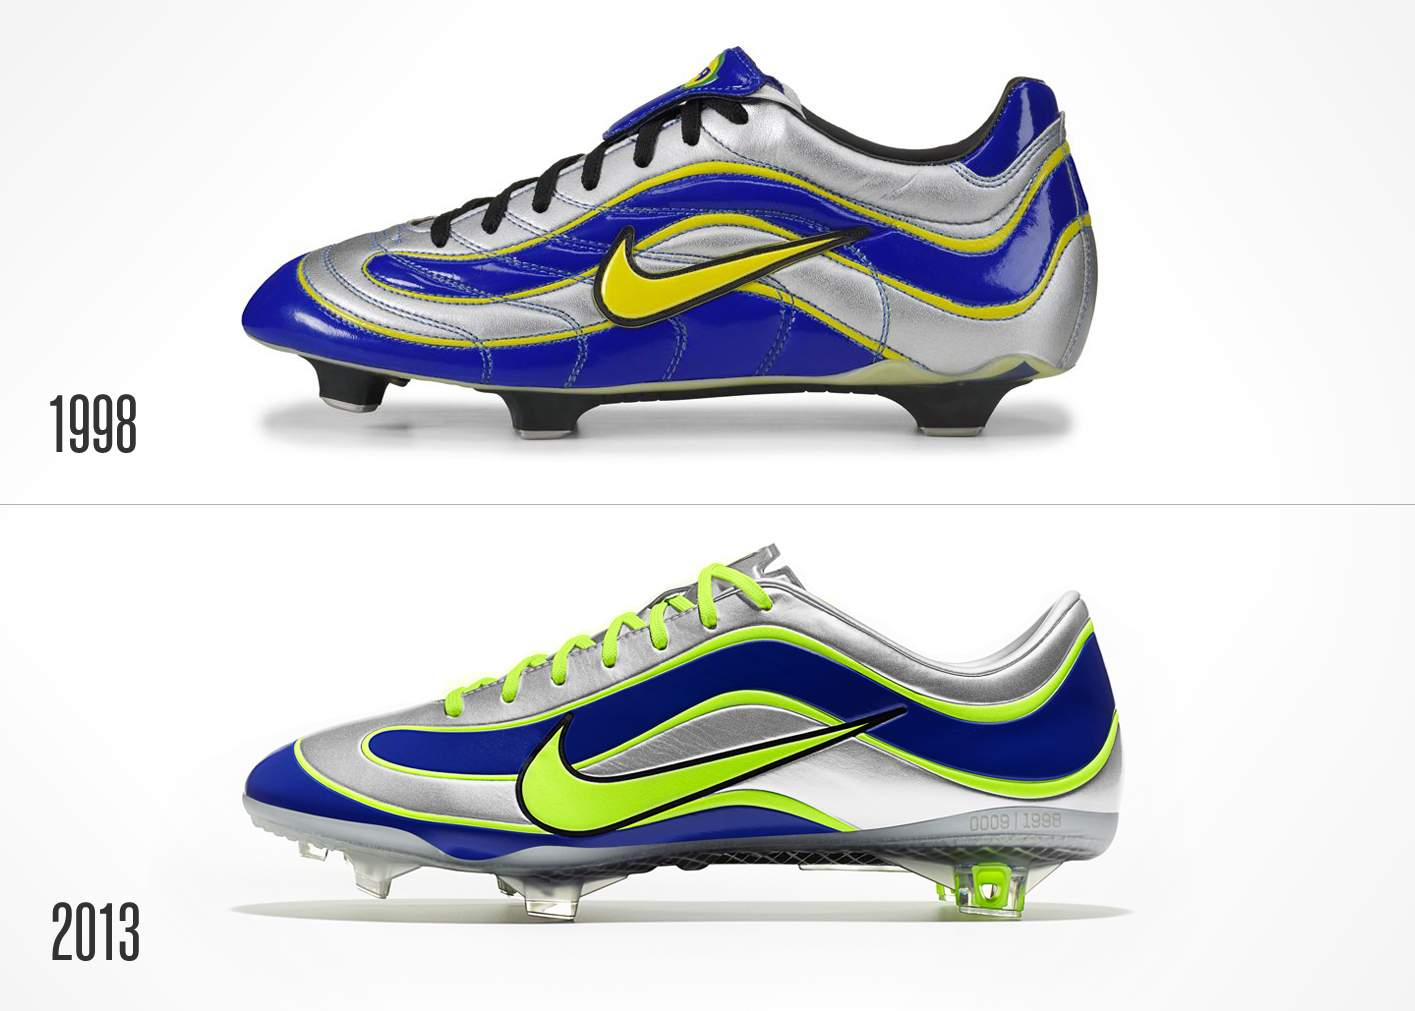 exclusive nike mercurial neymar 2018 signature boots to be inspired by 1998 mercurial footy. Black Bedroom Furniture Sets. Home Design Ideas